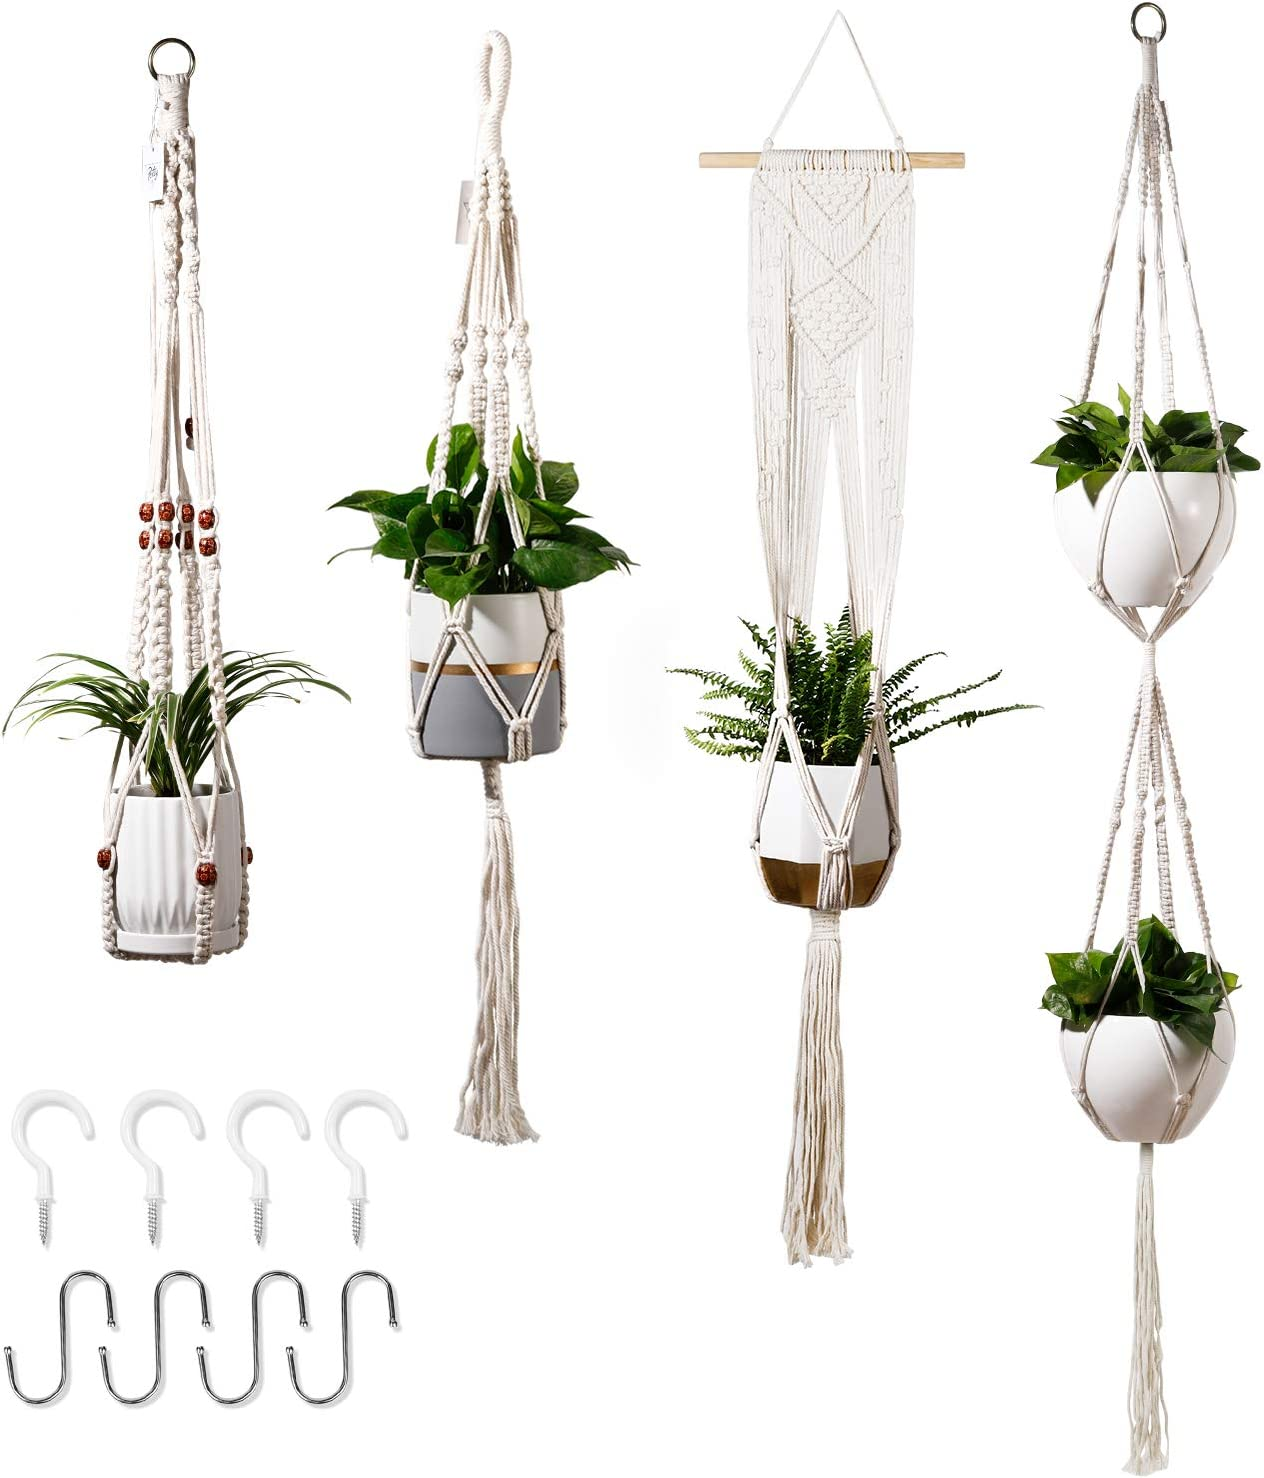 "POTEY 640101 4-Pack Macrame Plant Hangers - with 8 Hooks Hanging Planters for Indoor Plants Handmade Cotton Rope Hanging Planters Hanging Plant Holder for Boho Decor 35""/41""/46""/67"",Ivory"